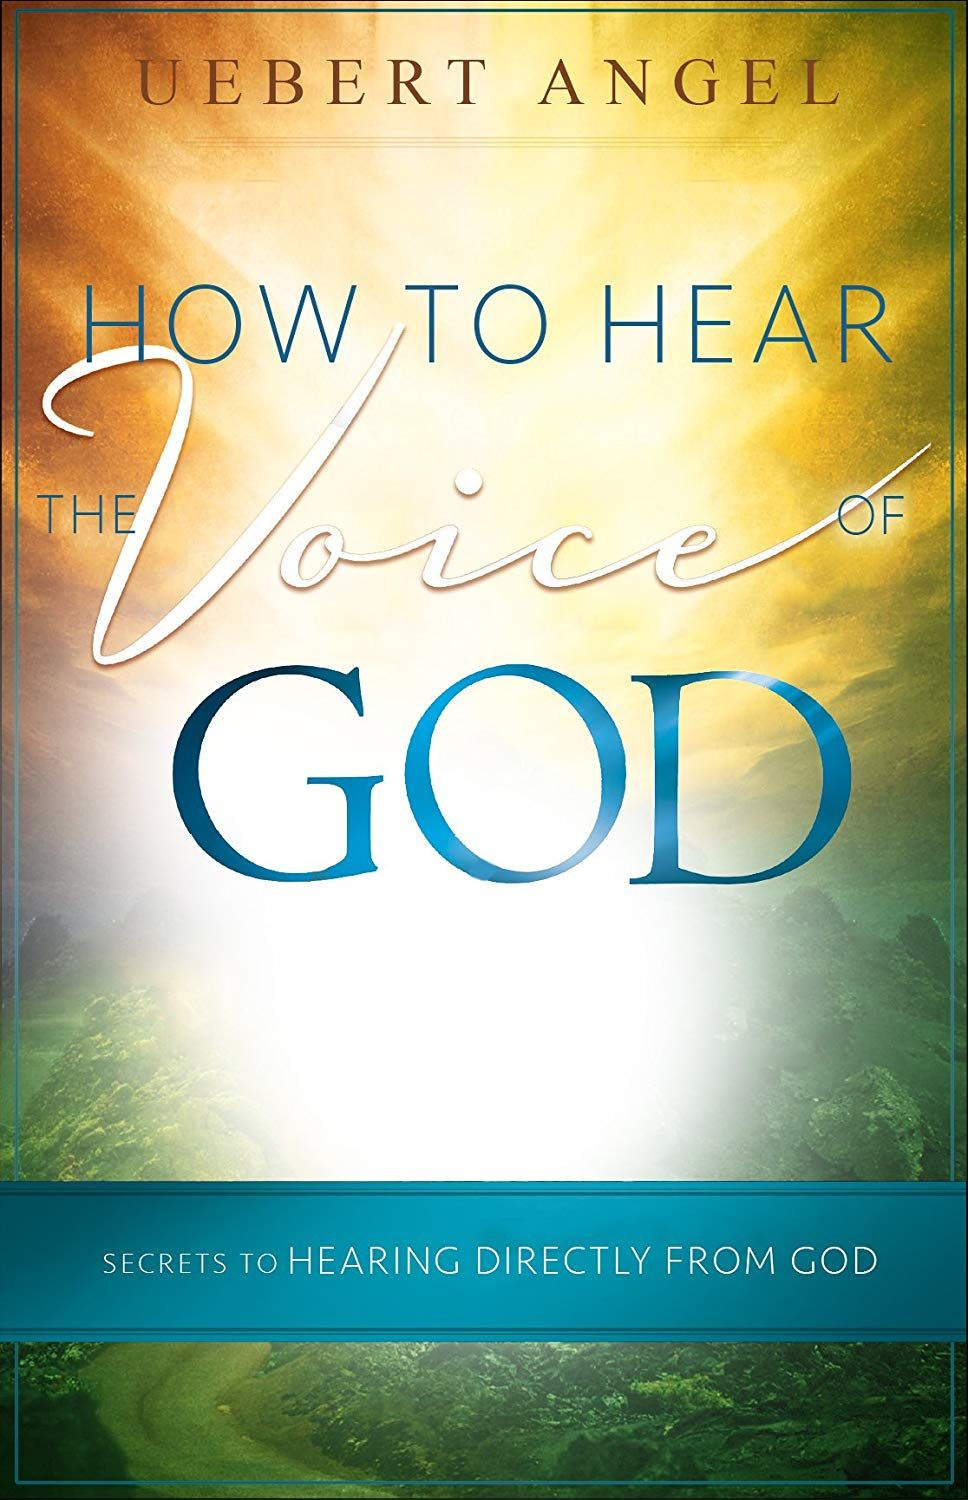 How to hear the voice of god secrets to hearing directly